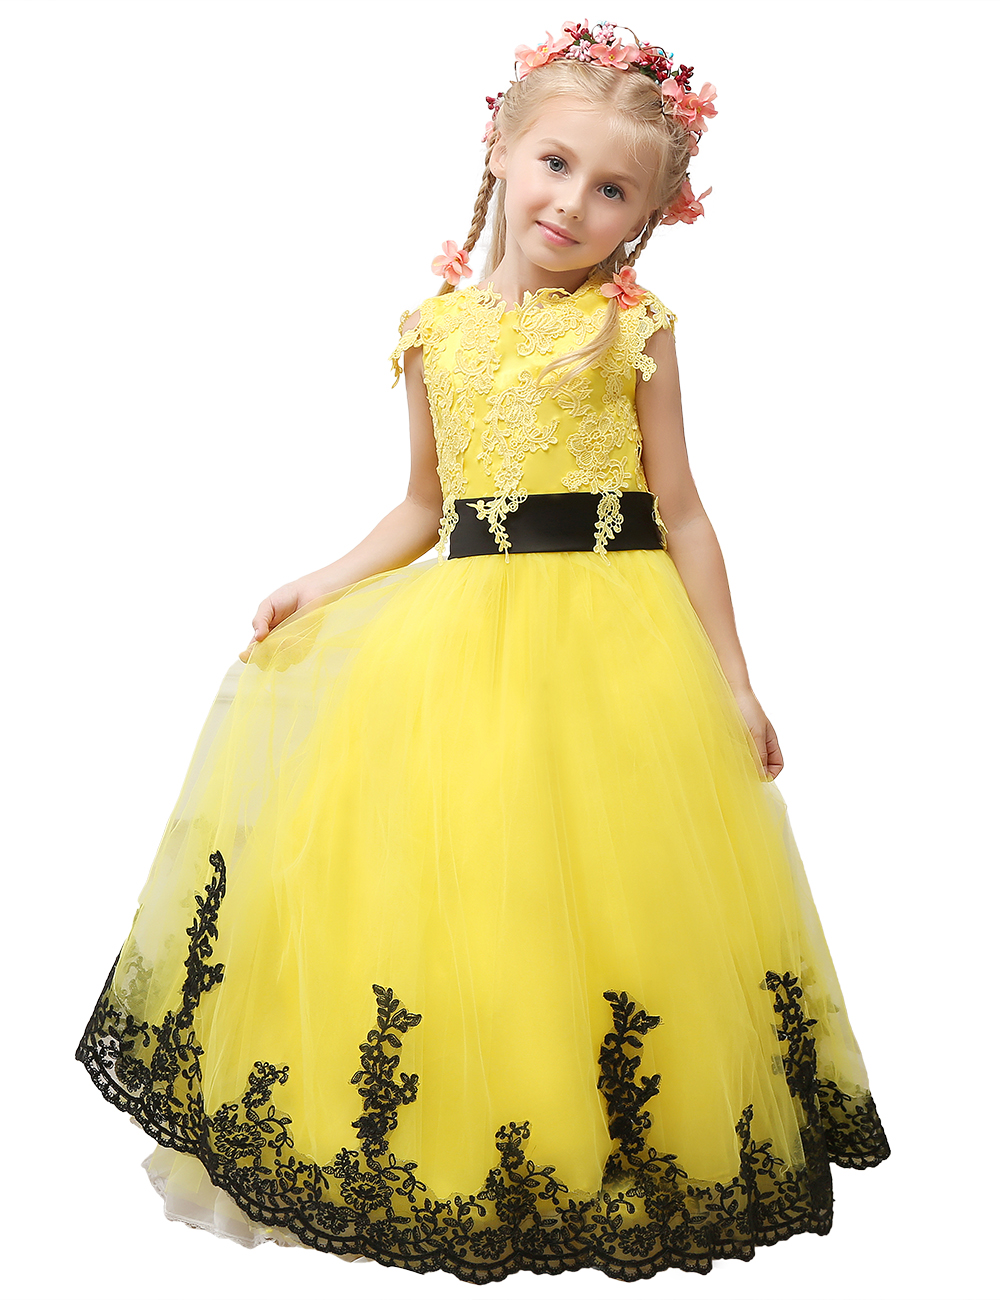 Pageant Dress Little Princess Glitz Ball Gown Lace Yellow Ball Gown